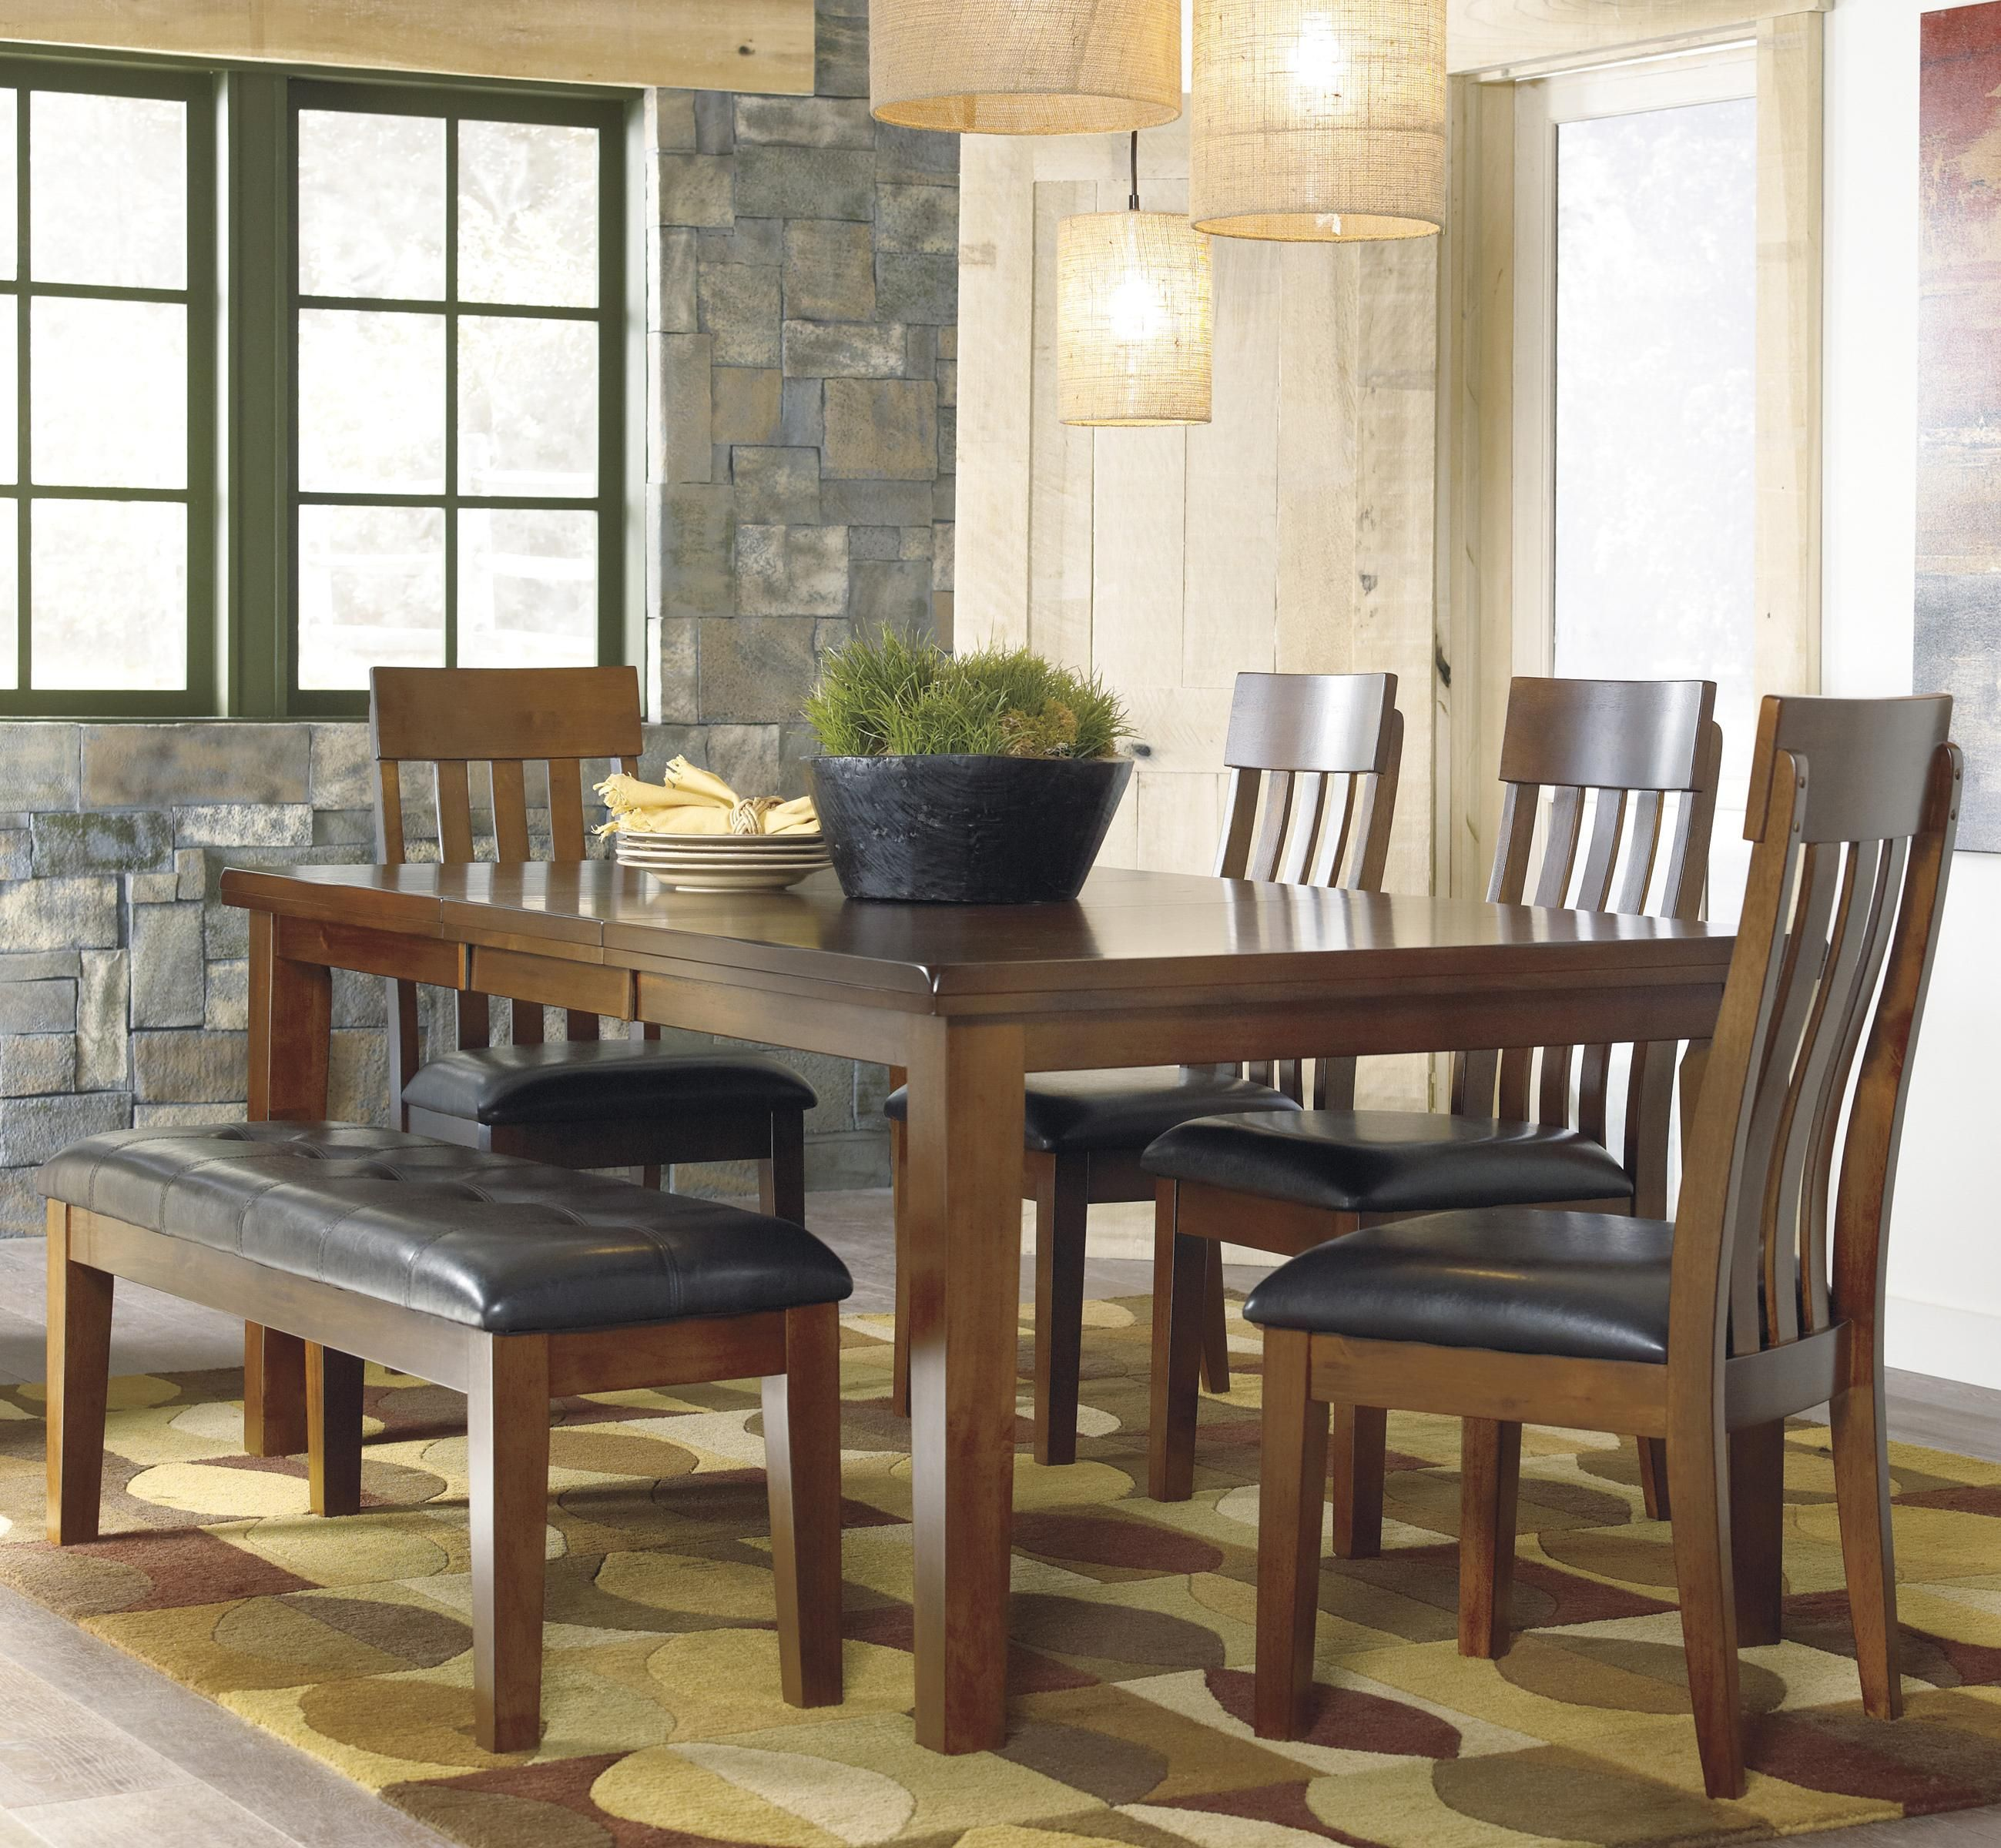 Lowest Prices On Discount Ralene Dinette Set Ashley Furniture Buy In A Group And Save More